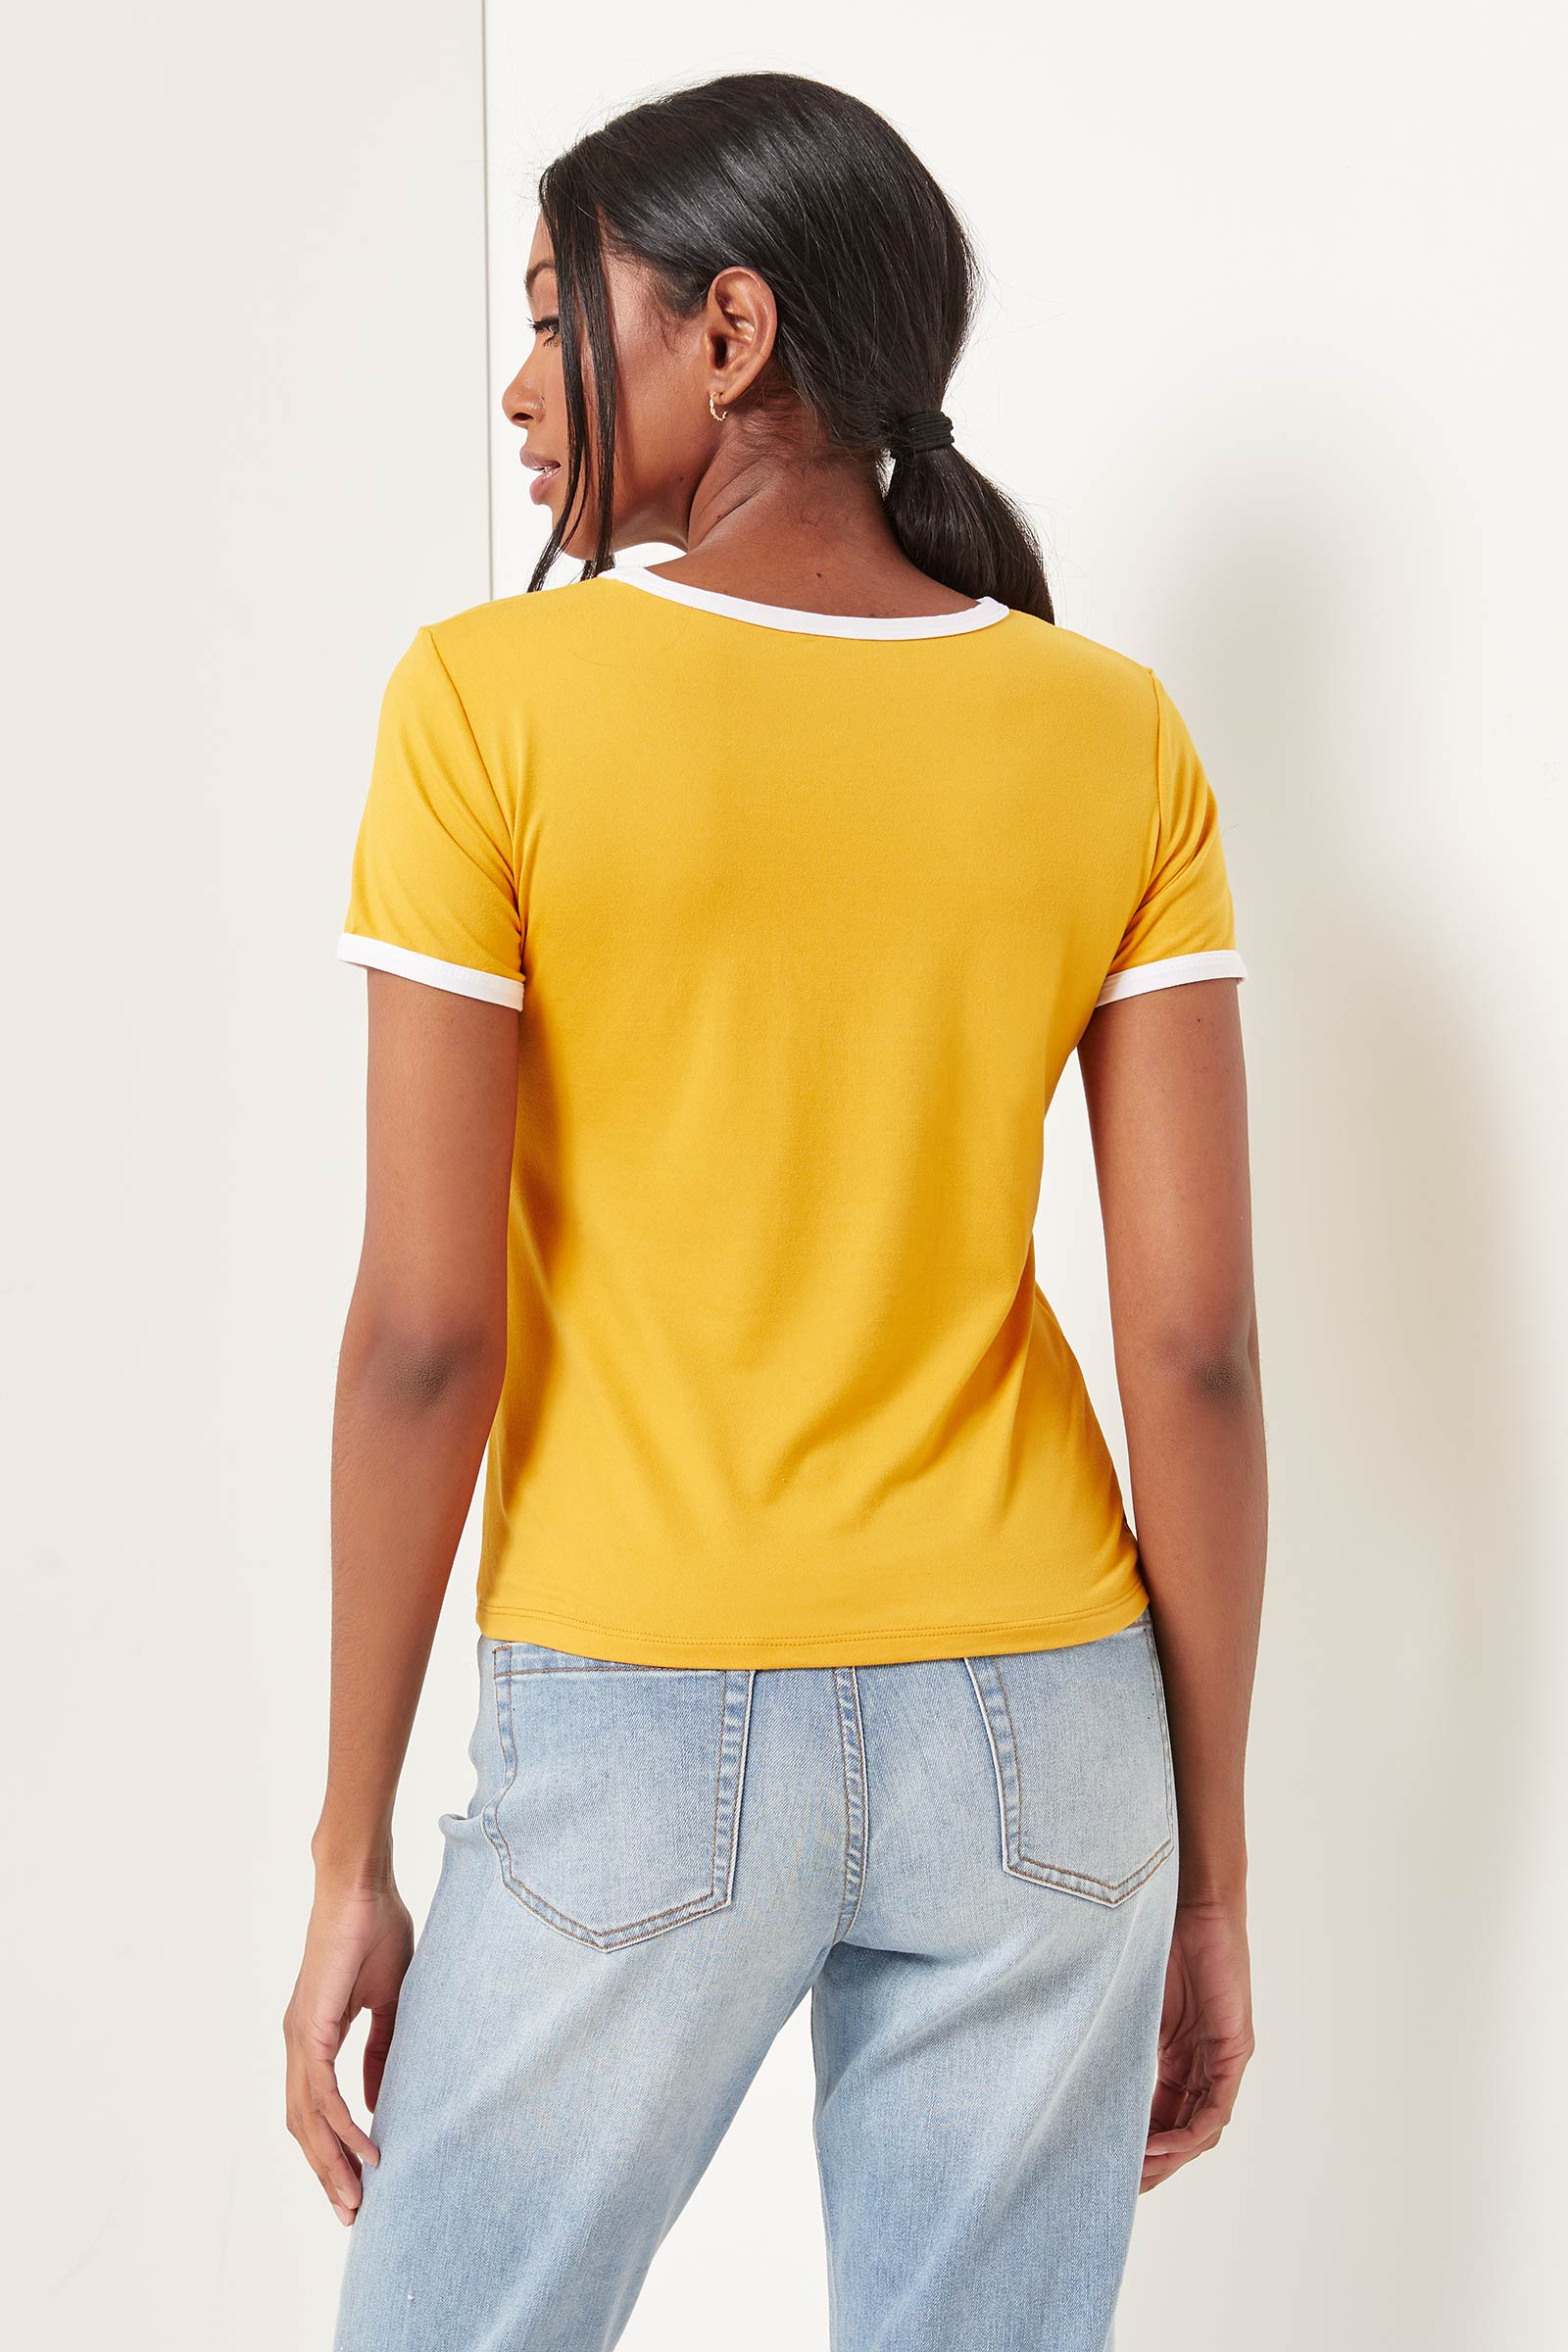 The Simpsons Ringer Tee